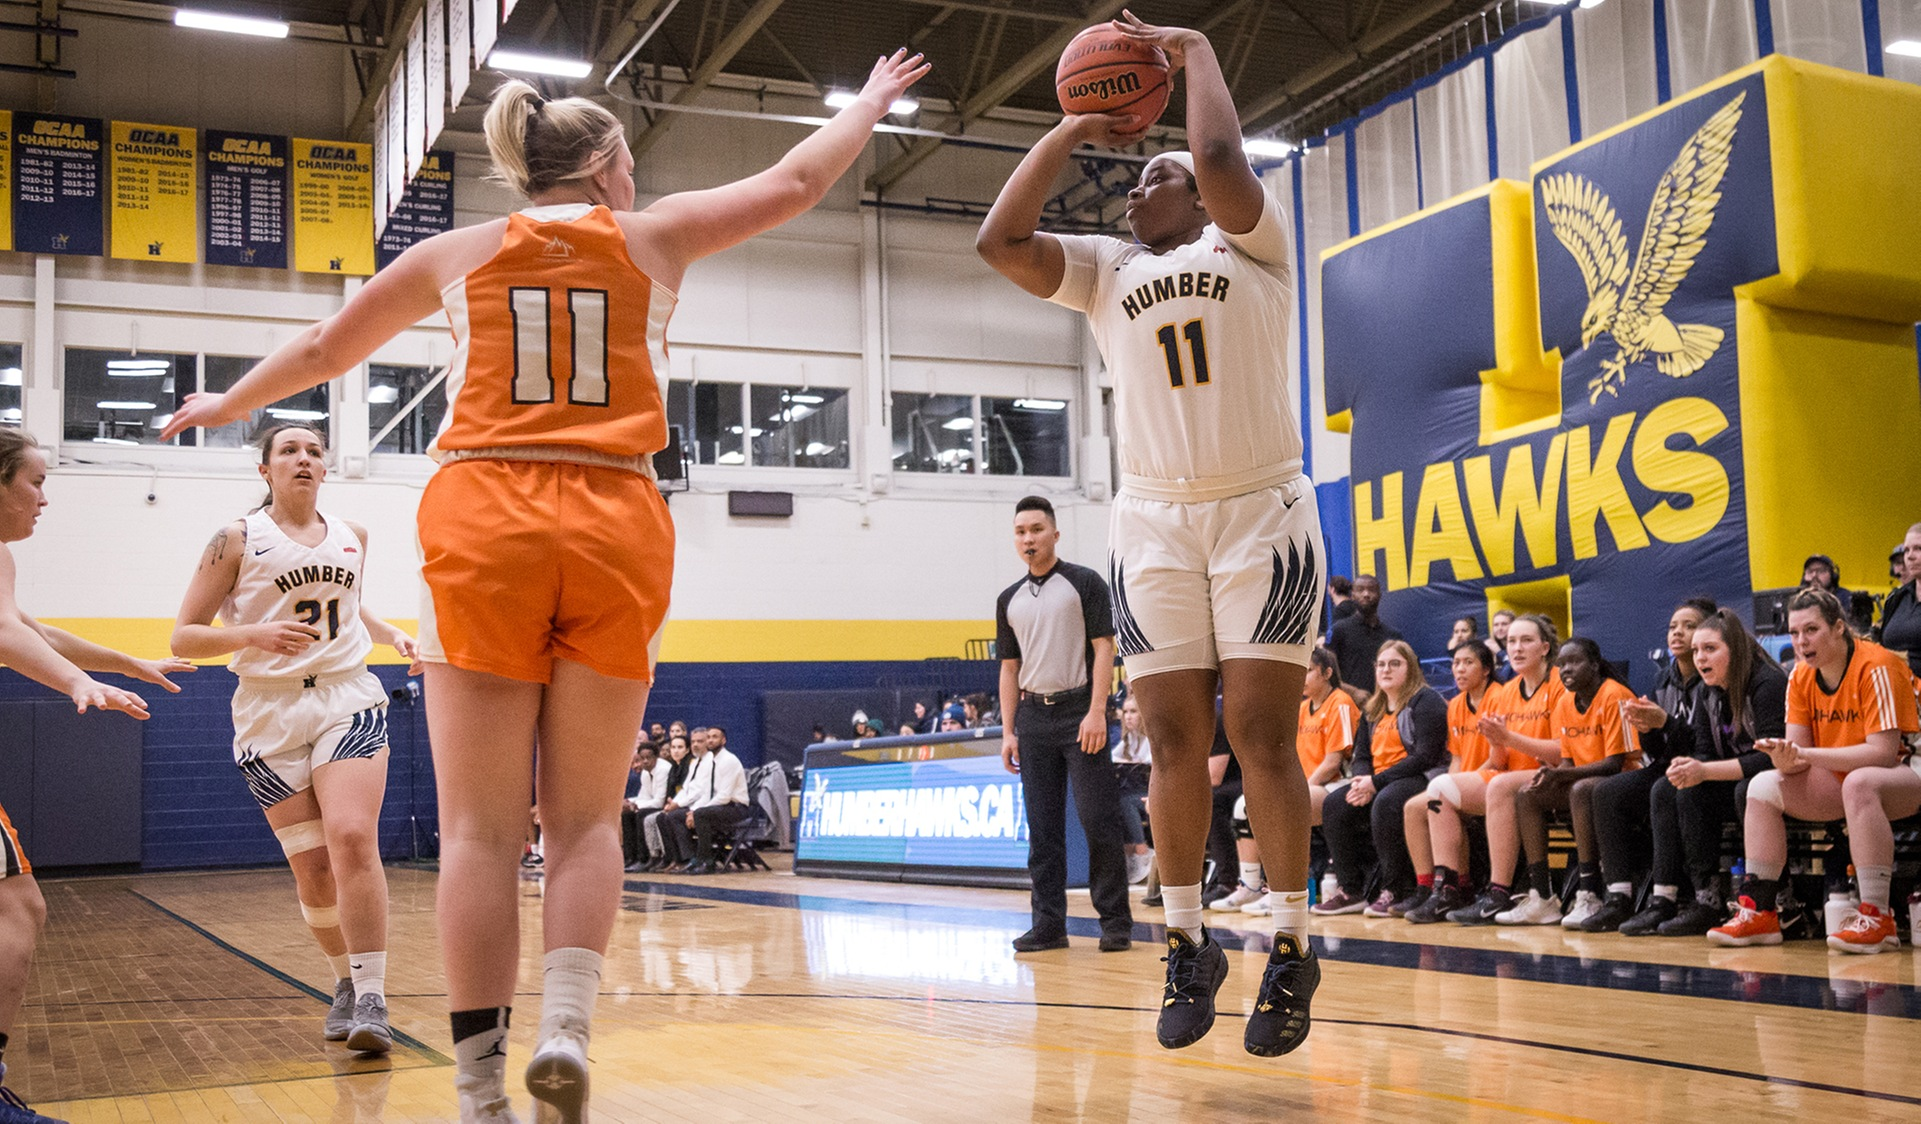 No. 2 WOMEN'S BASKETBALL WINS HOME FINALE OVER MOHAWK, 70-46